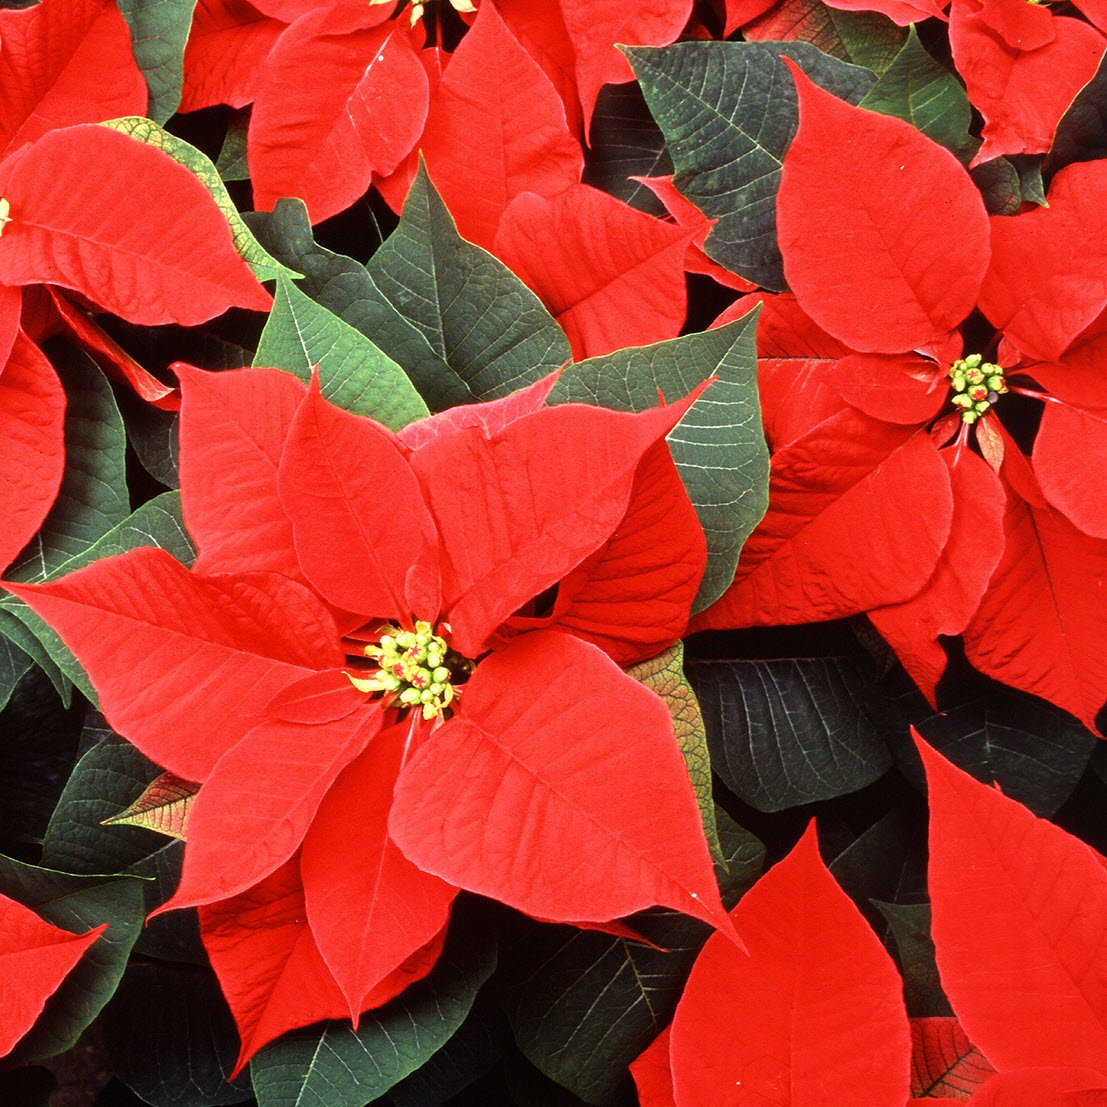 A classic holiday favorite, this cluster of poinsettias offers brilliant red foliage.